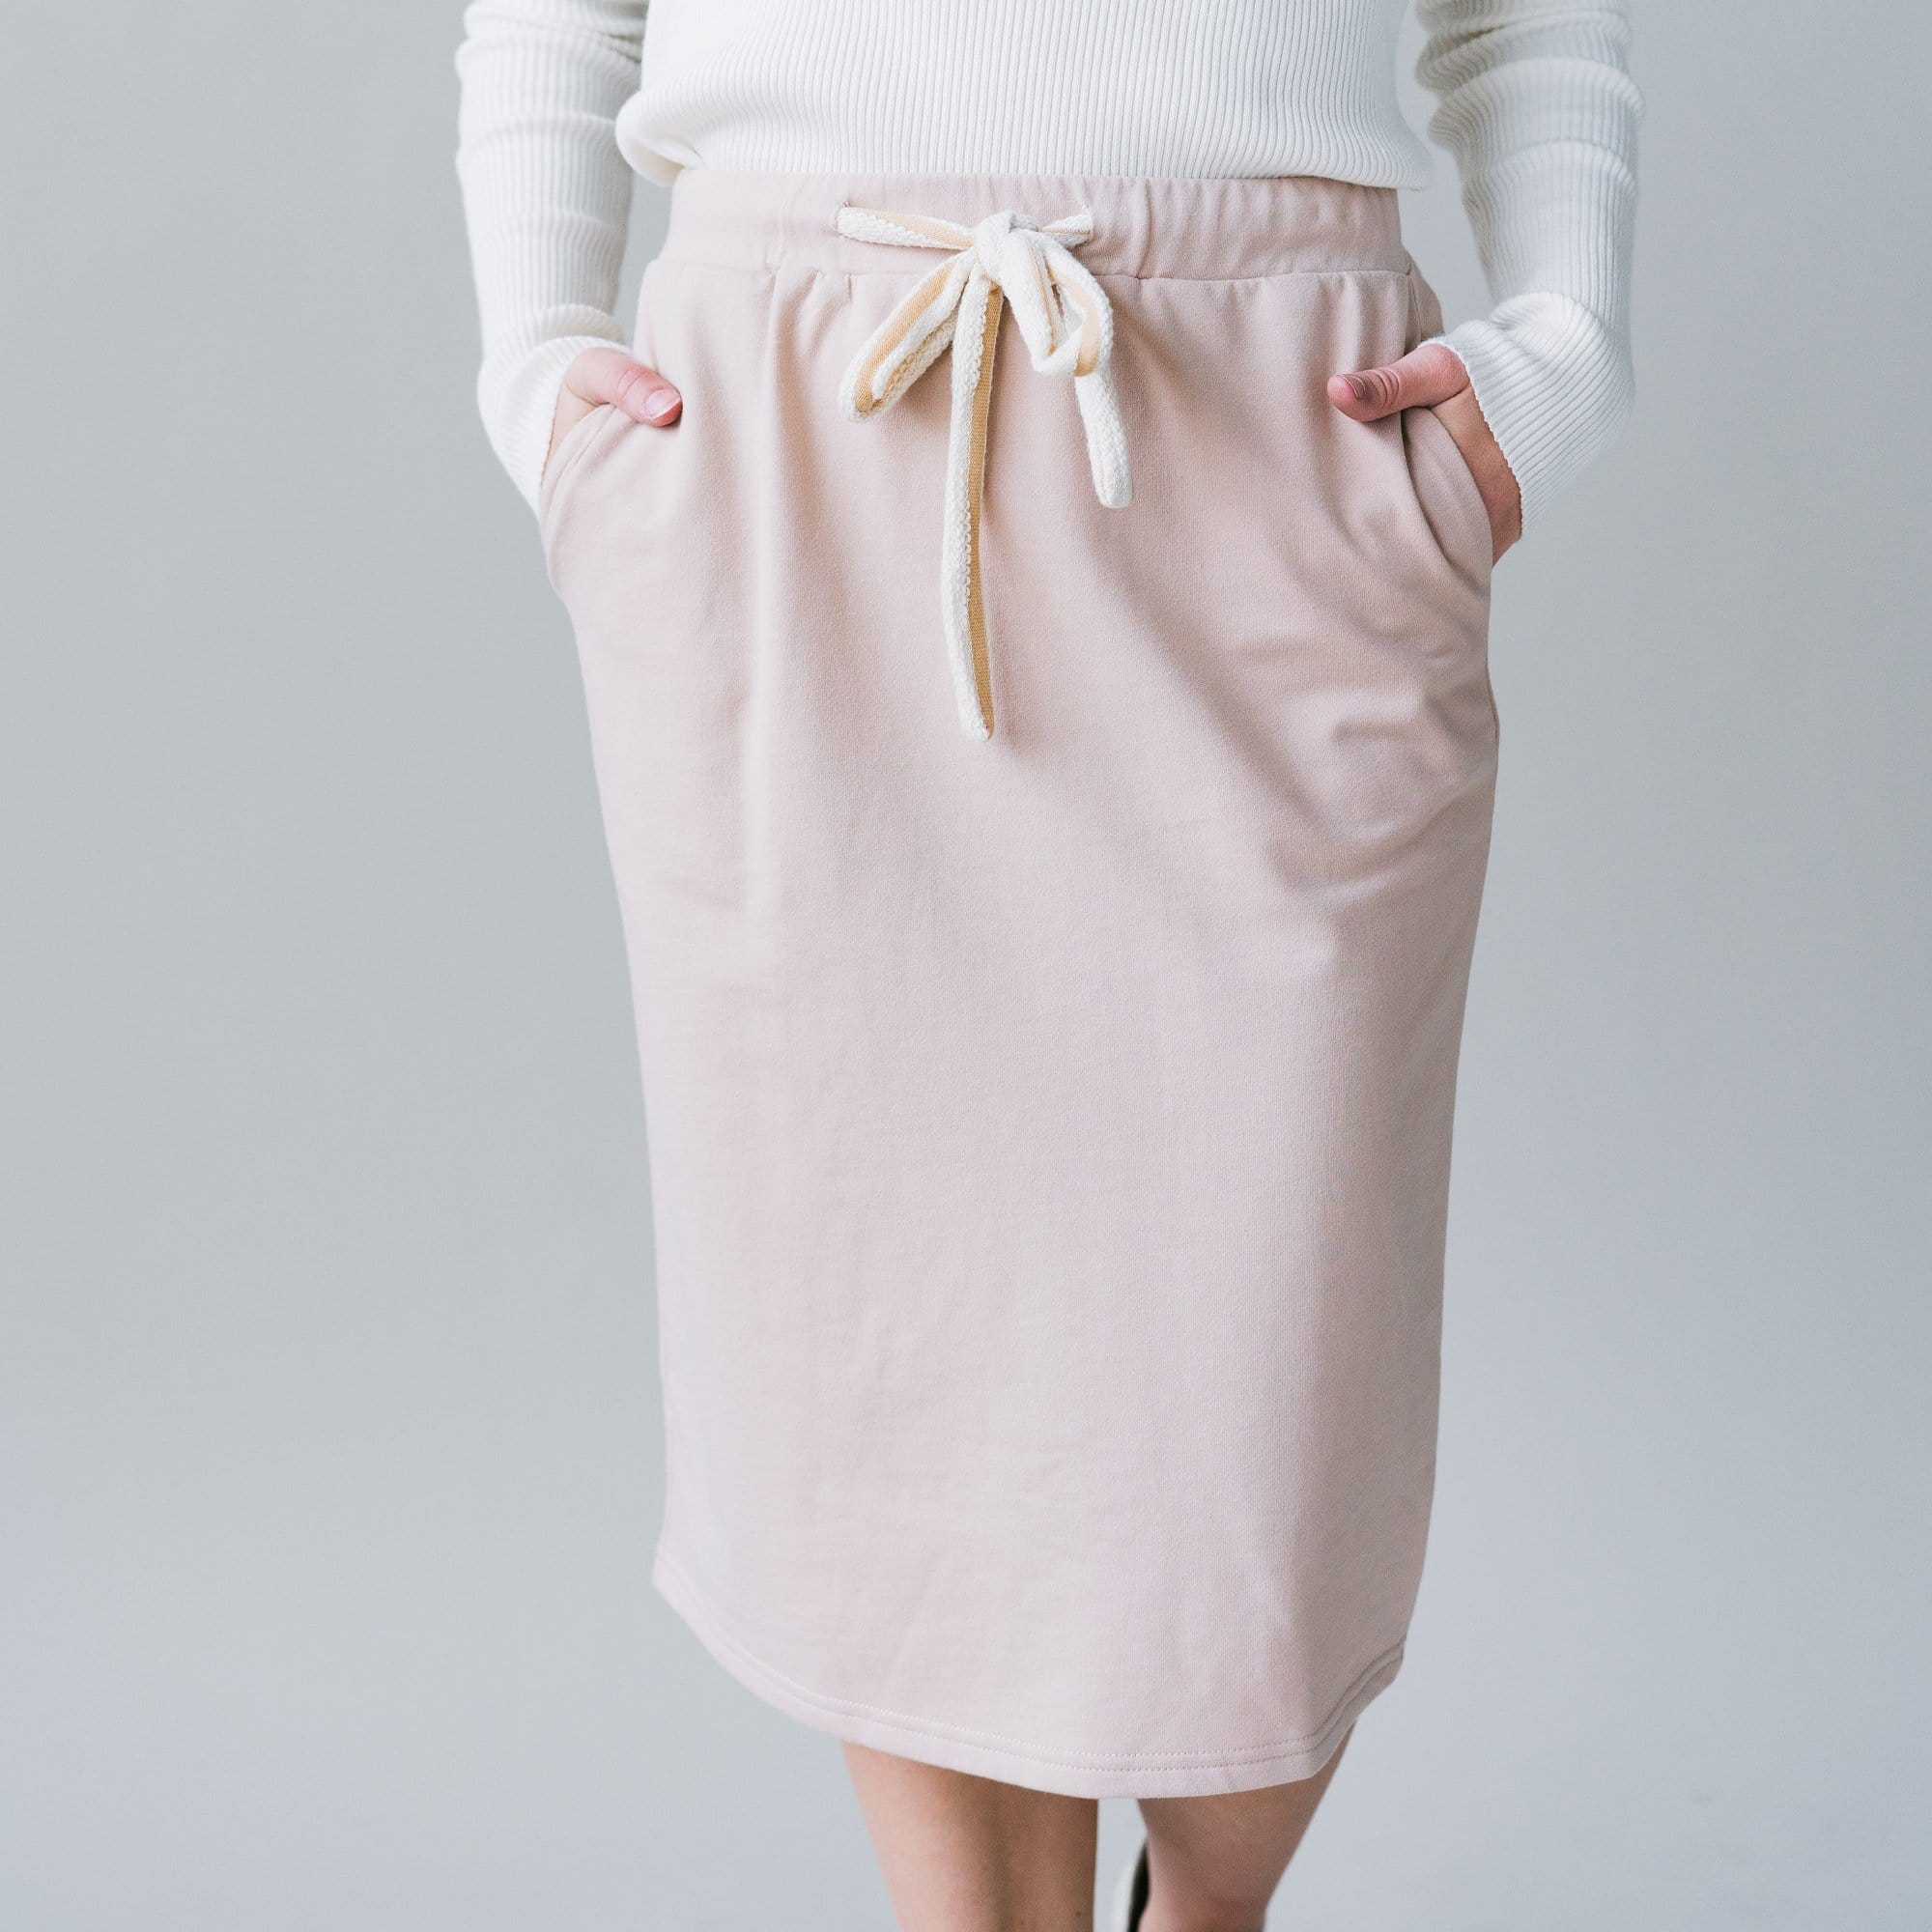 Demi Skirt in Beige